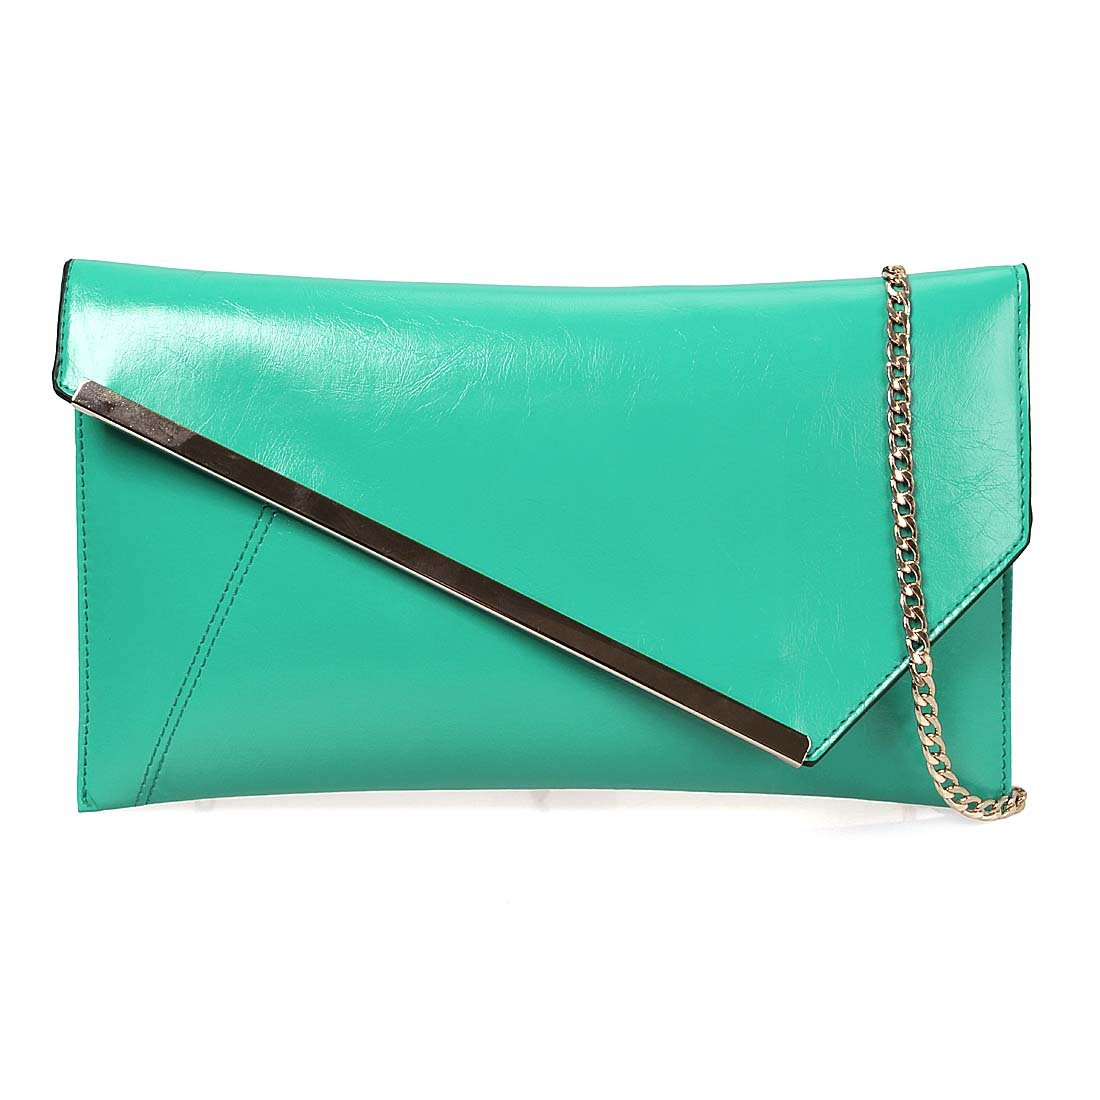 BMC Fashionably Chic Turquoise Faux Leather Gold Metal Accent Envelope Style Statement Clutch by b.m.c (Image #6)